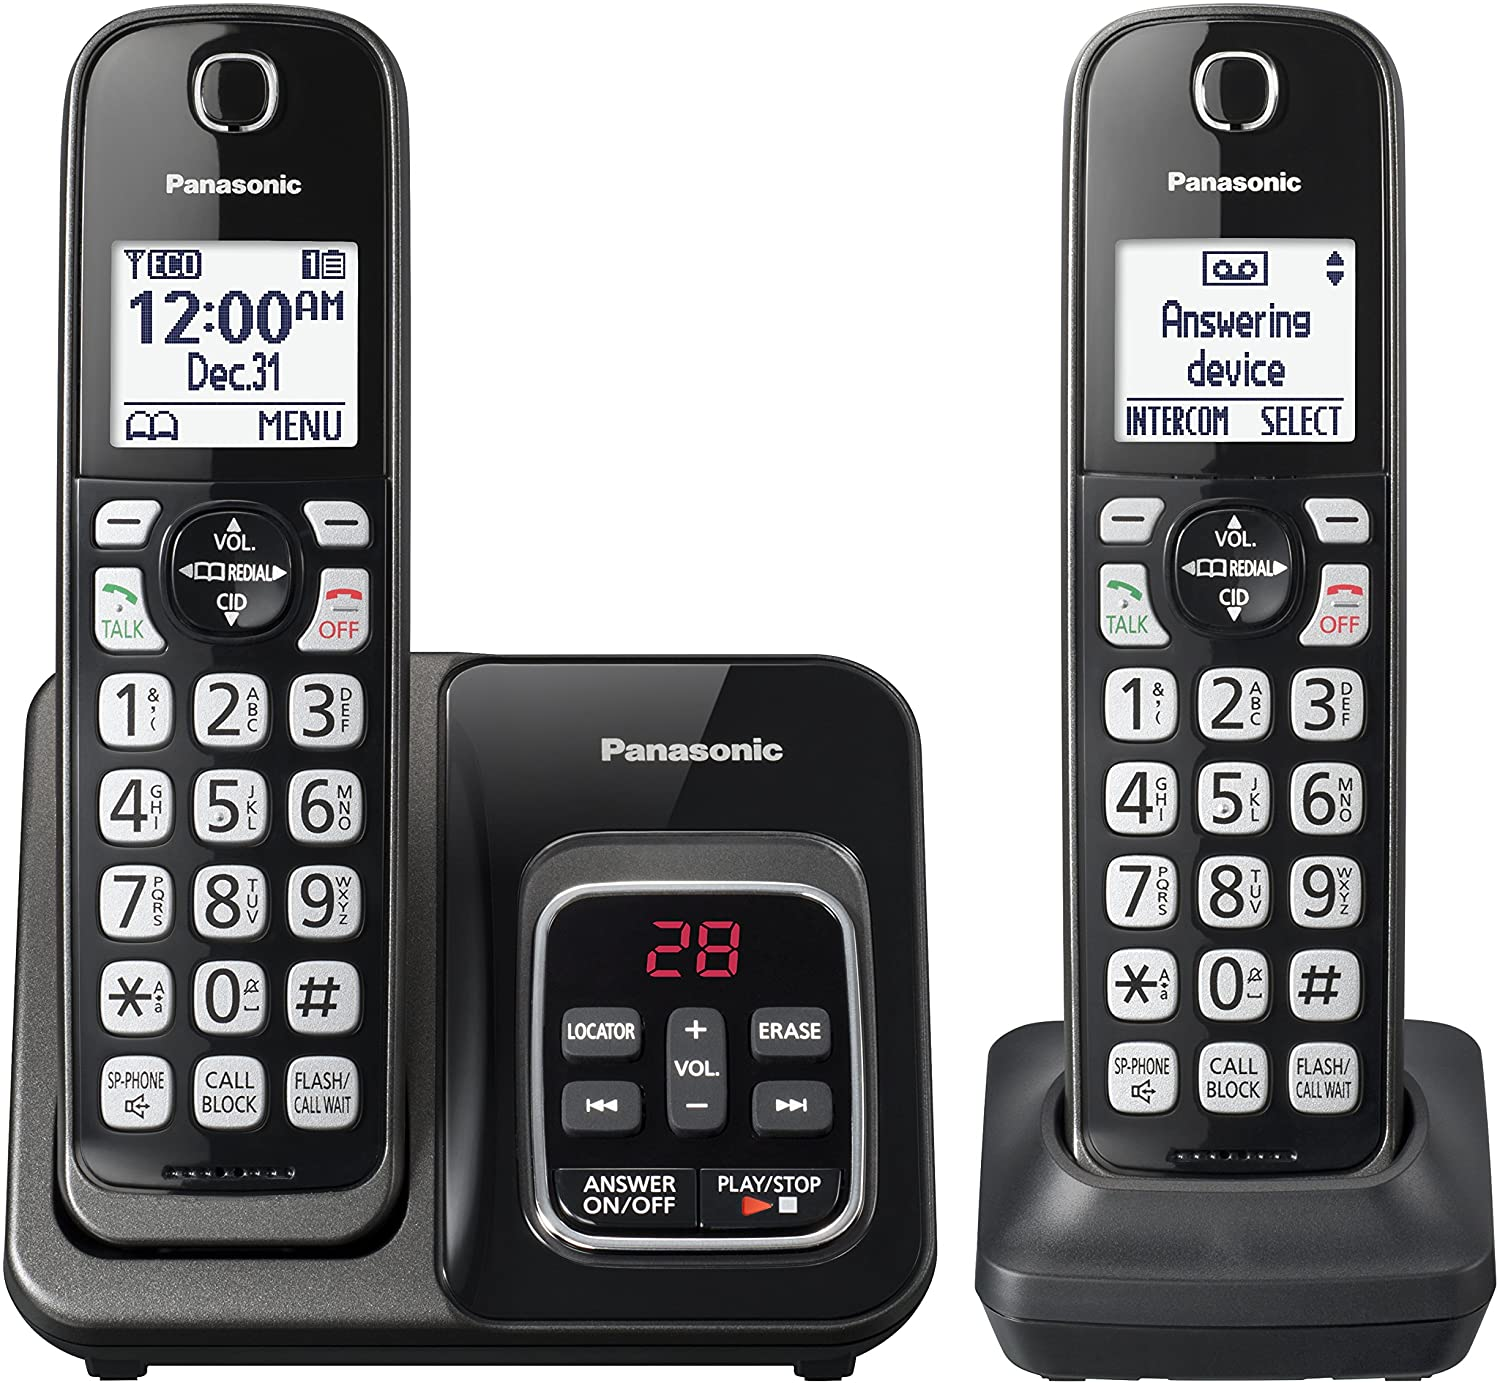 PANASONIC Expandable Cordless Phone System with Link2Cell Bluetooth, Voice Assistant, Answering Machine and Call Blocking - 2 Cordless Handsets - KX-TGD562M (Metallic Black)